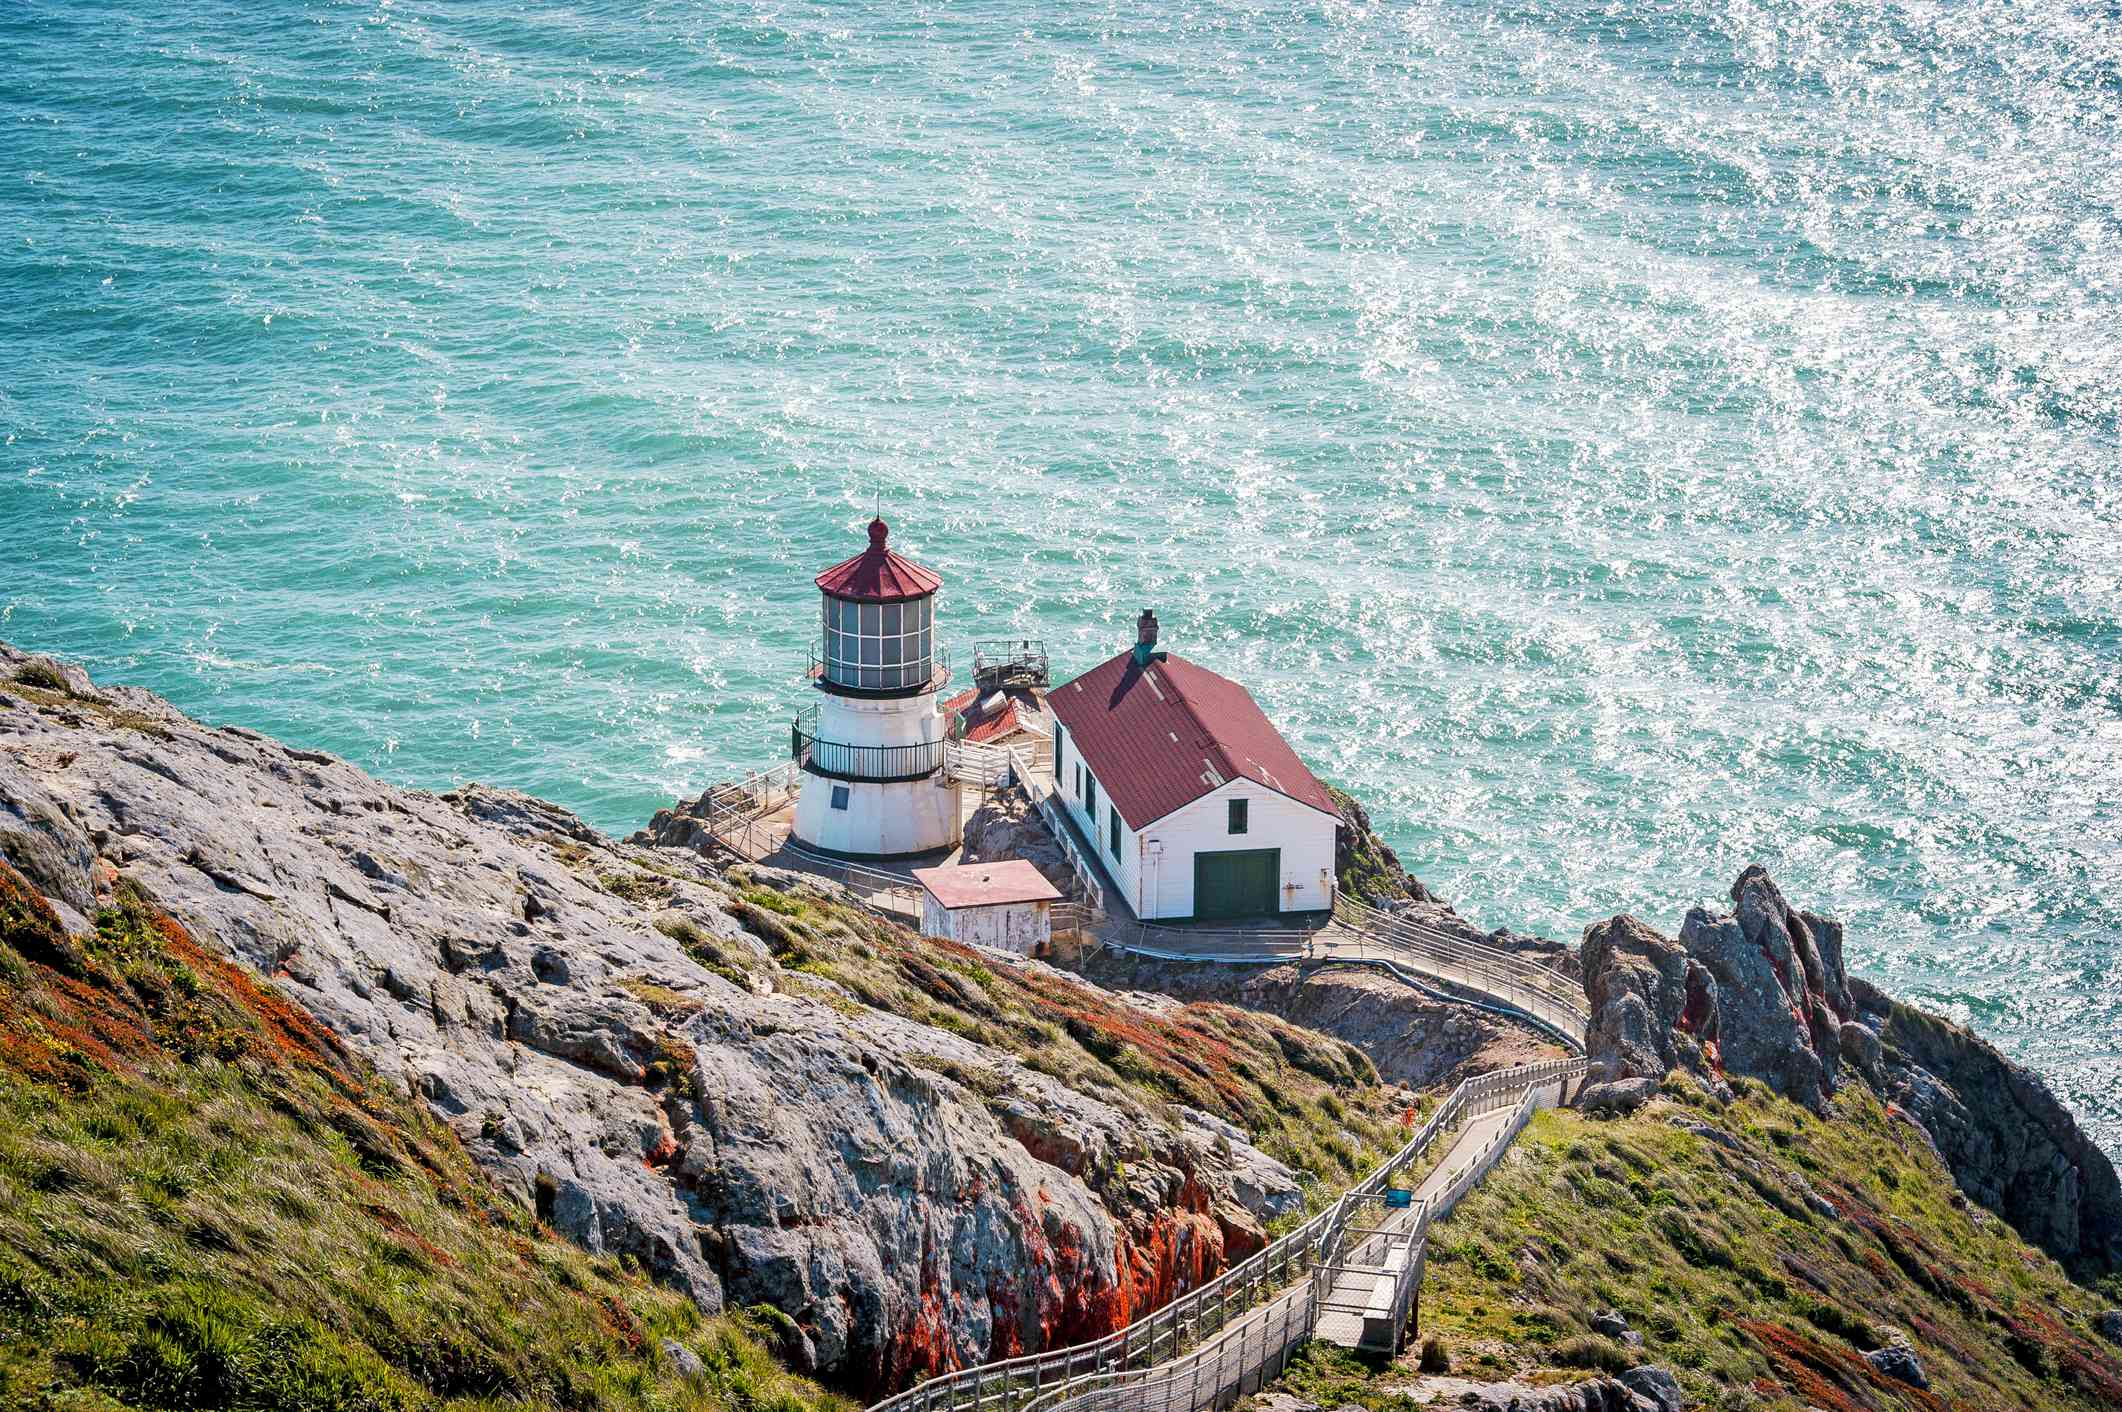 A view of Point Reyes Lighthouse in Point Reyes National Seashore